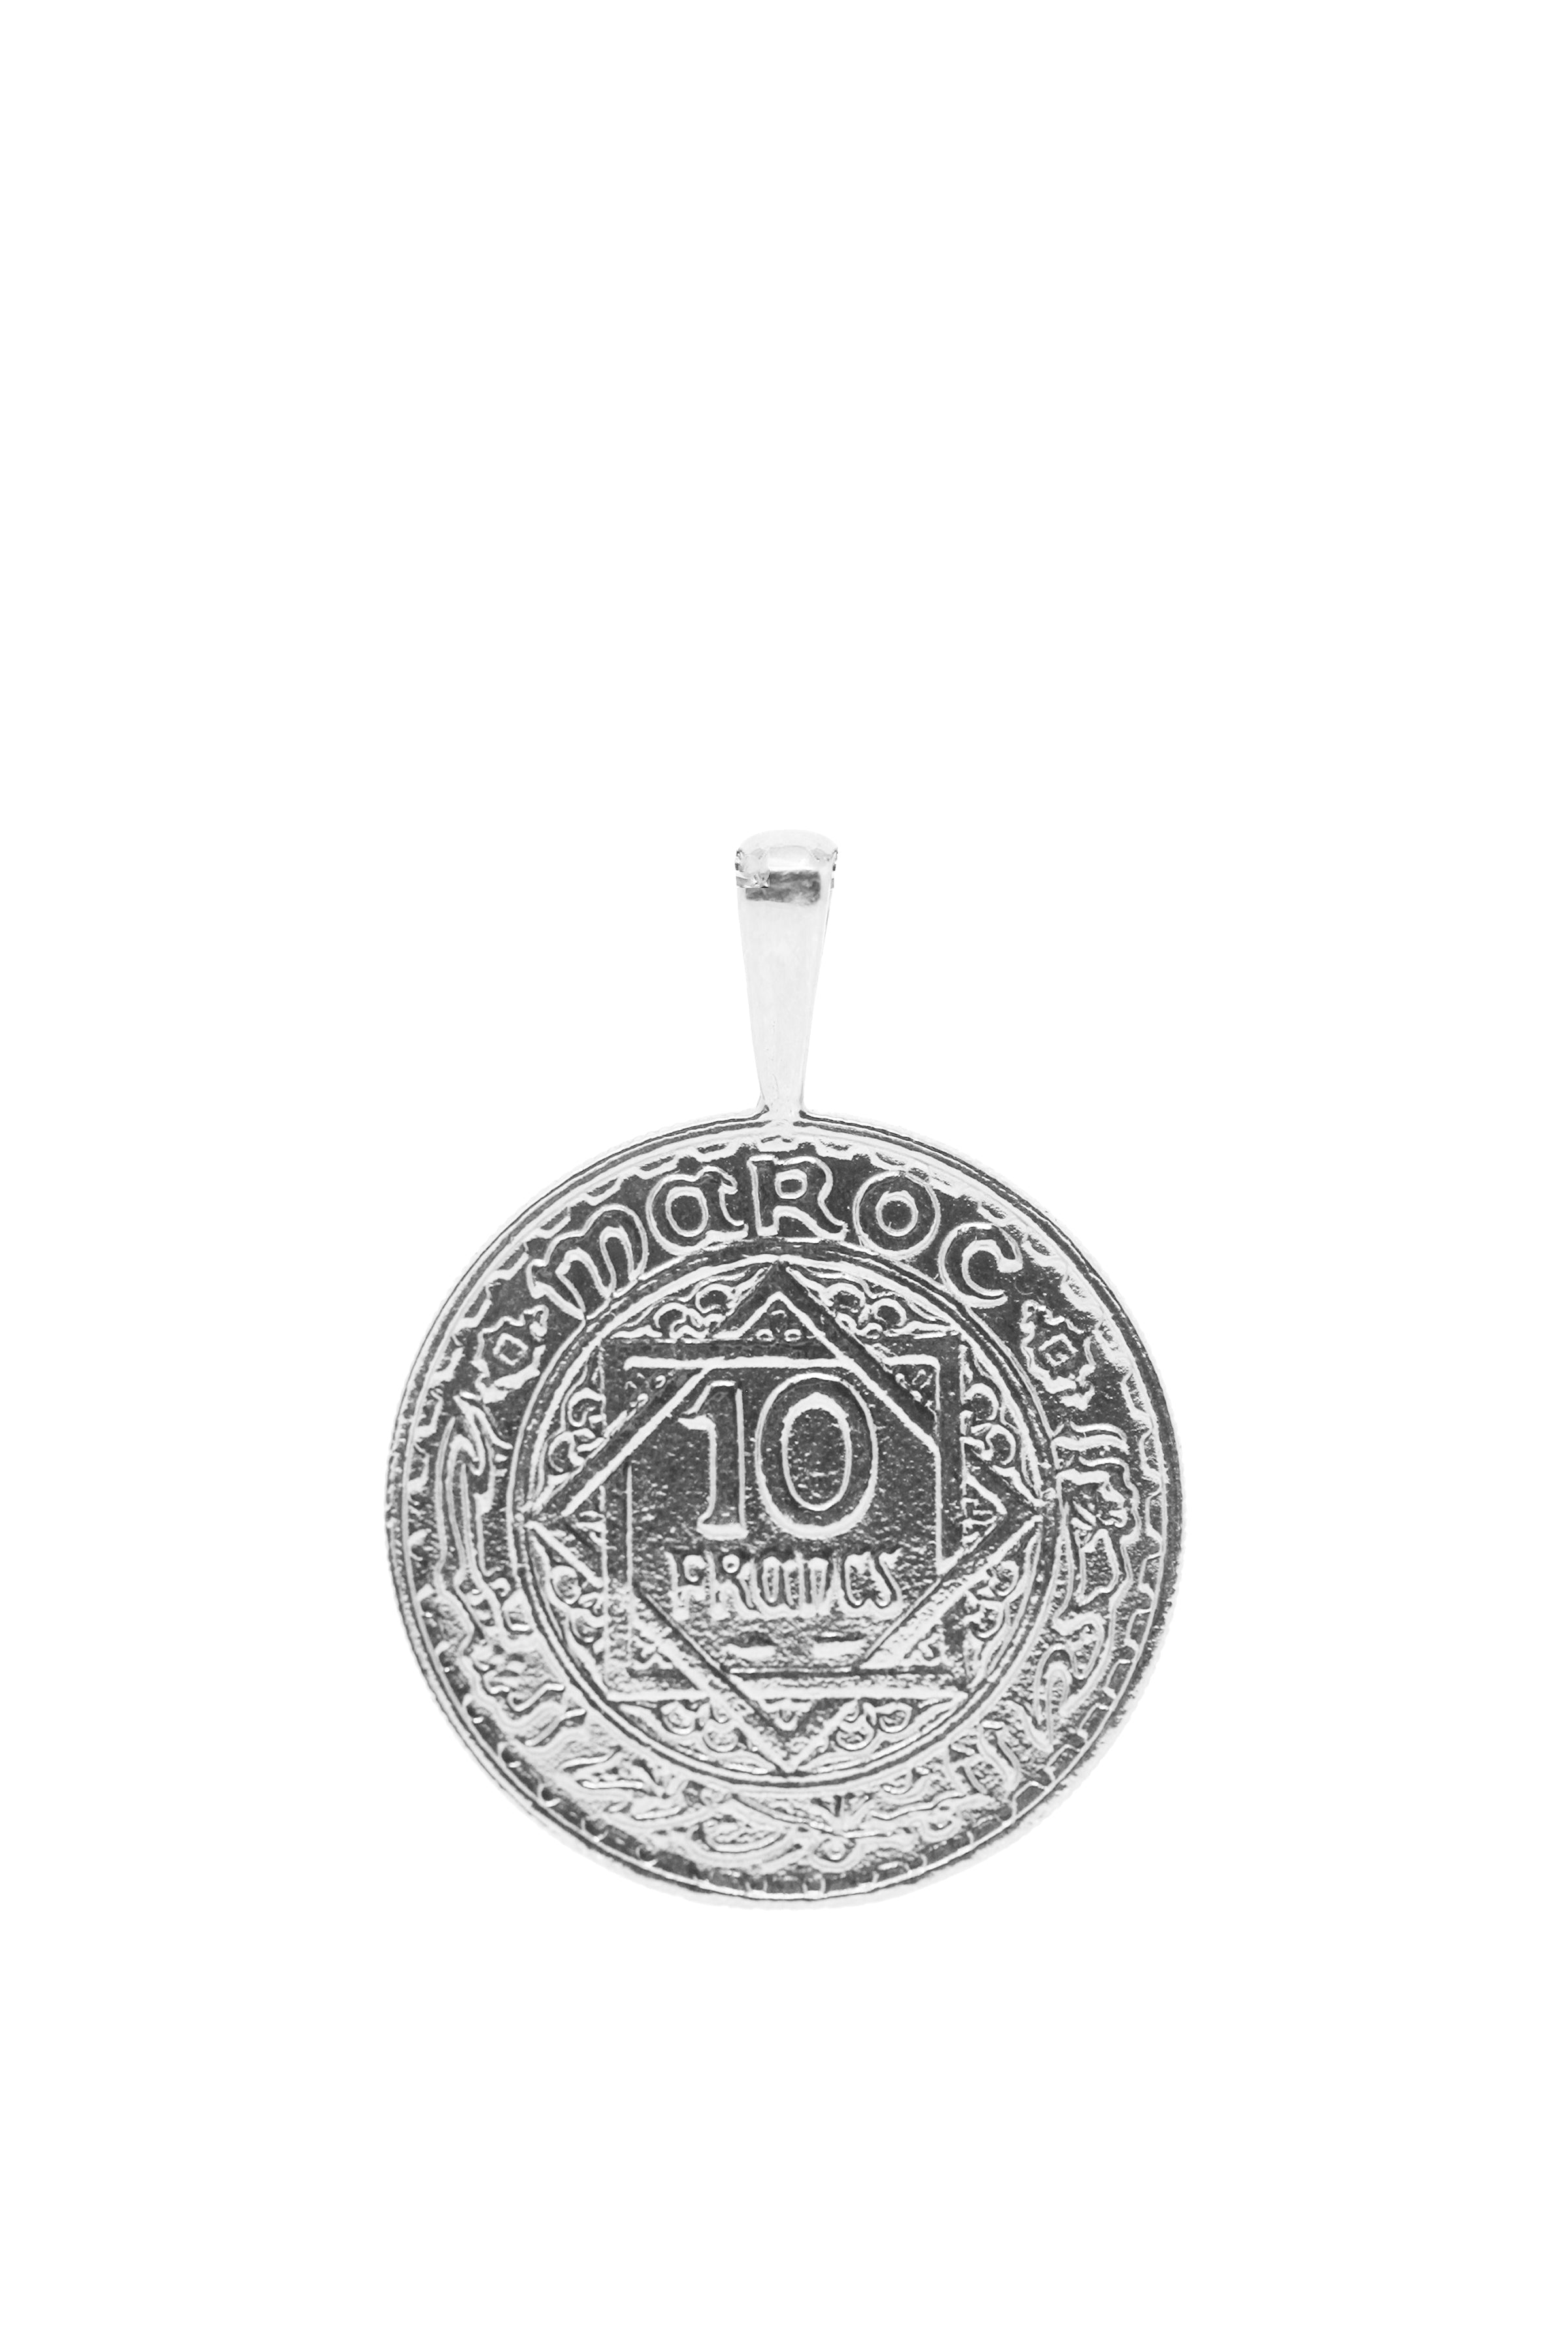 THE MOROCCO Coin Pendant